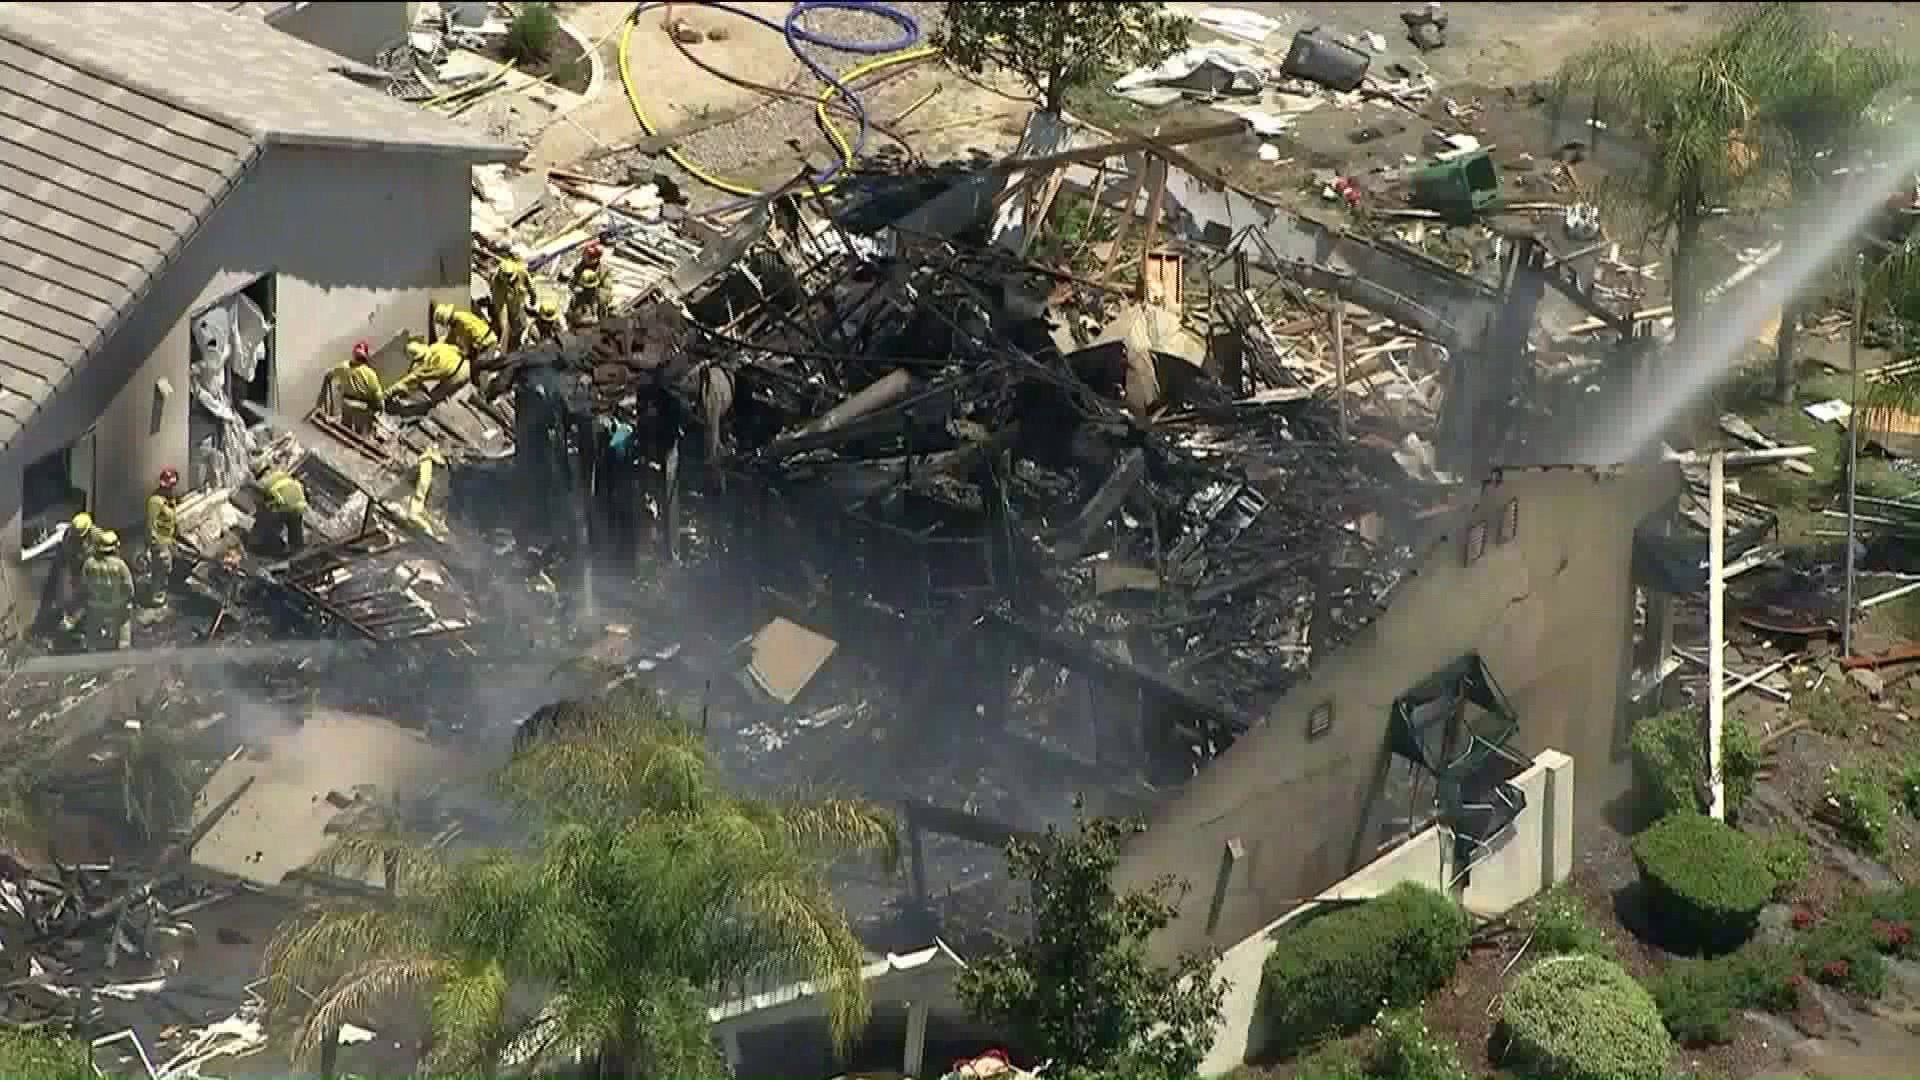 Local News - Damage Assessment Continues at Ground Zero of Murrieta Gas Explosion